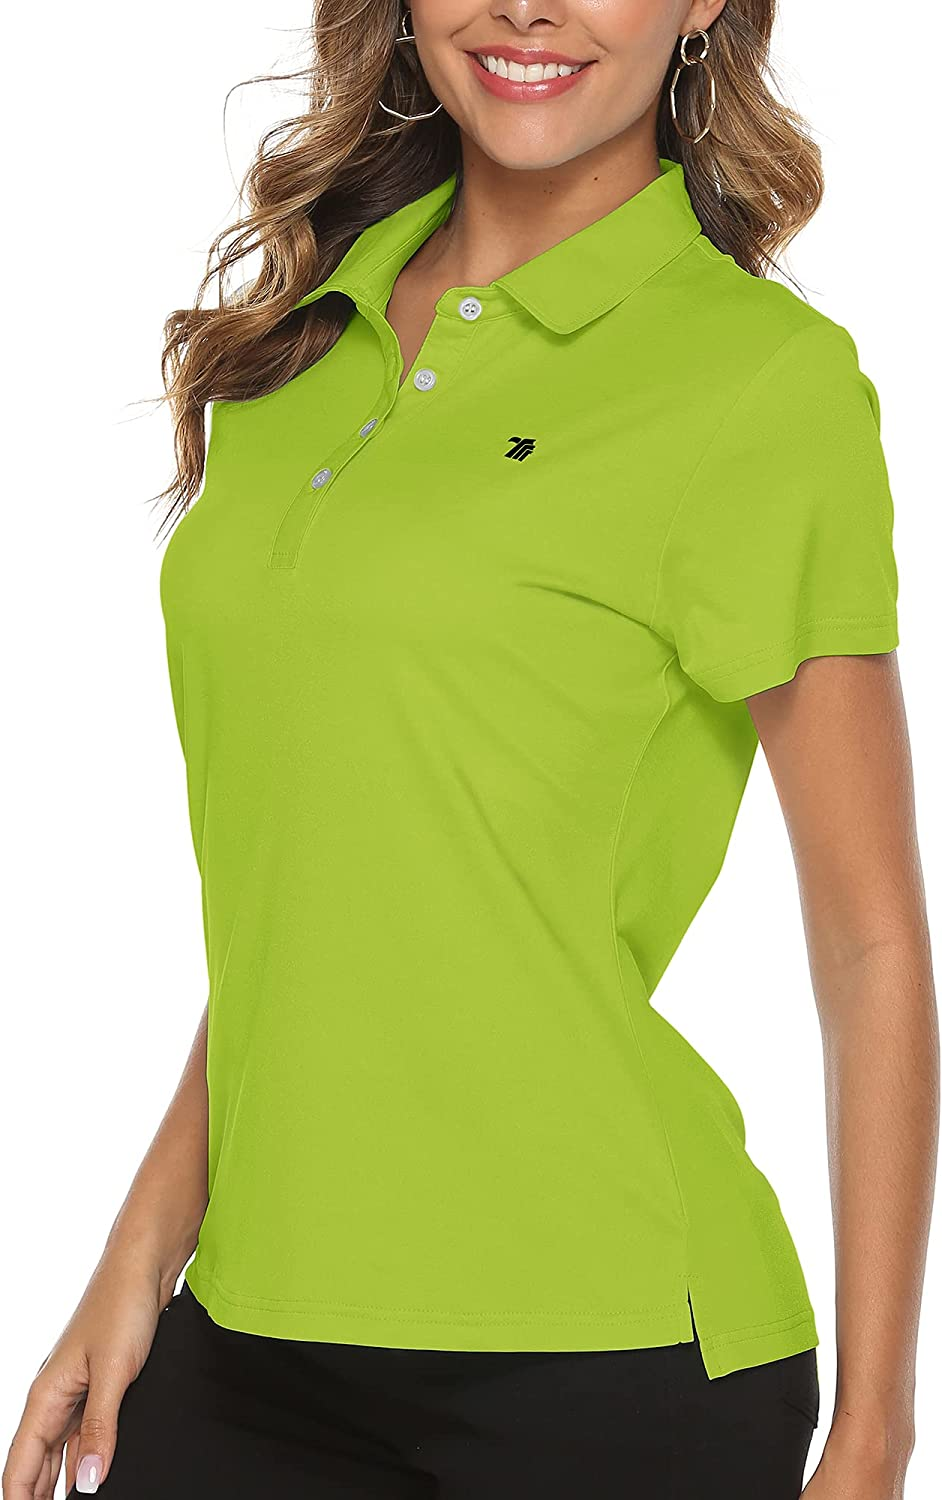 store YSENTO Women El Paso Mall Golf Shirts Dry Fit Moisture Sleeve Short P Wicking